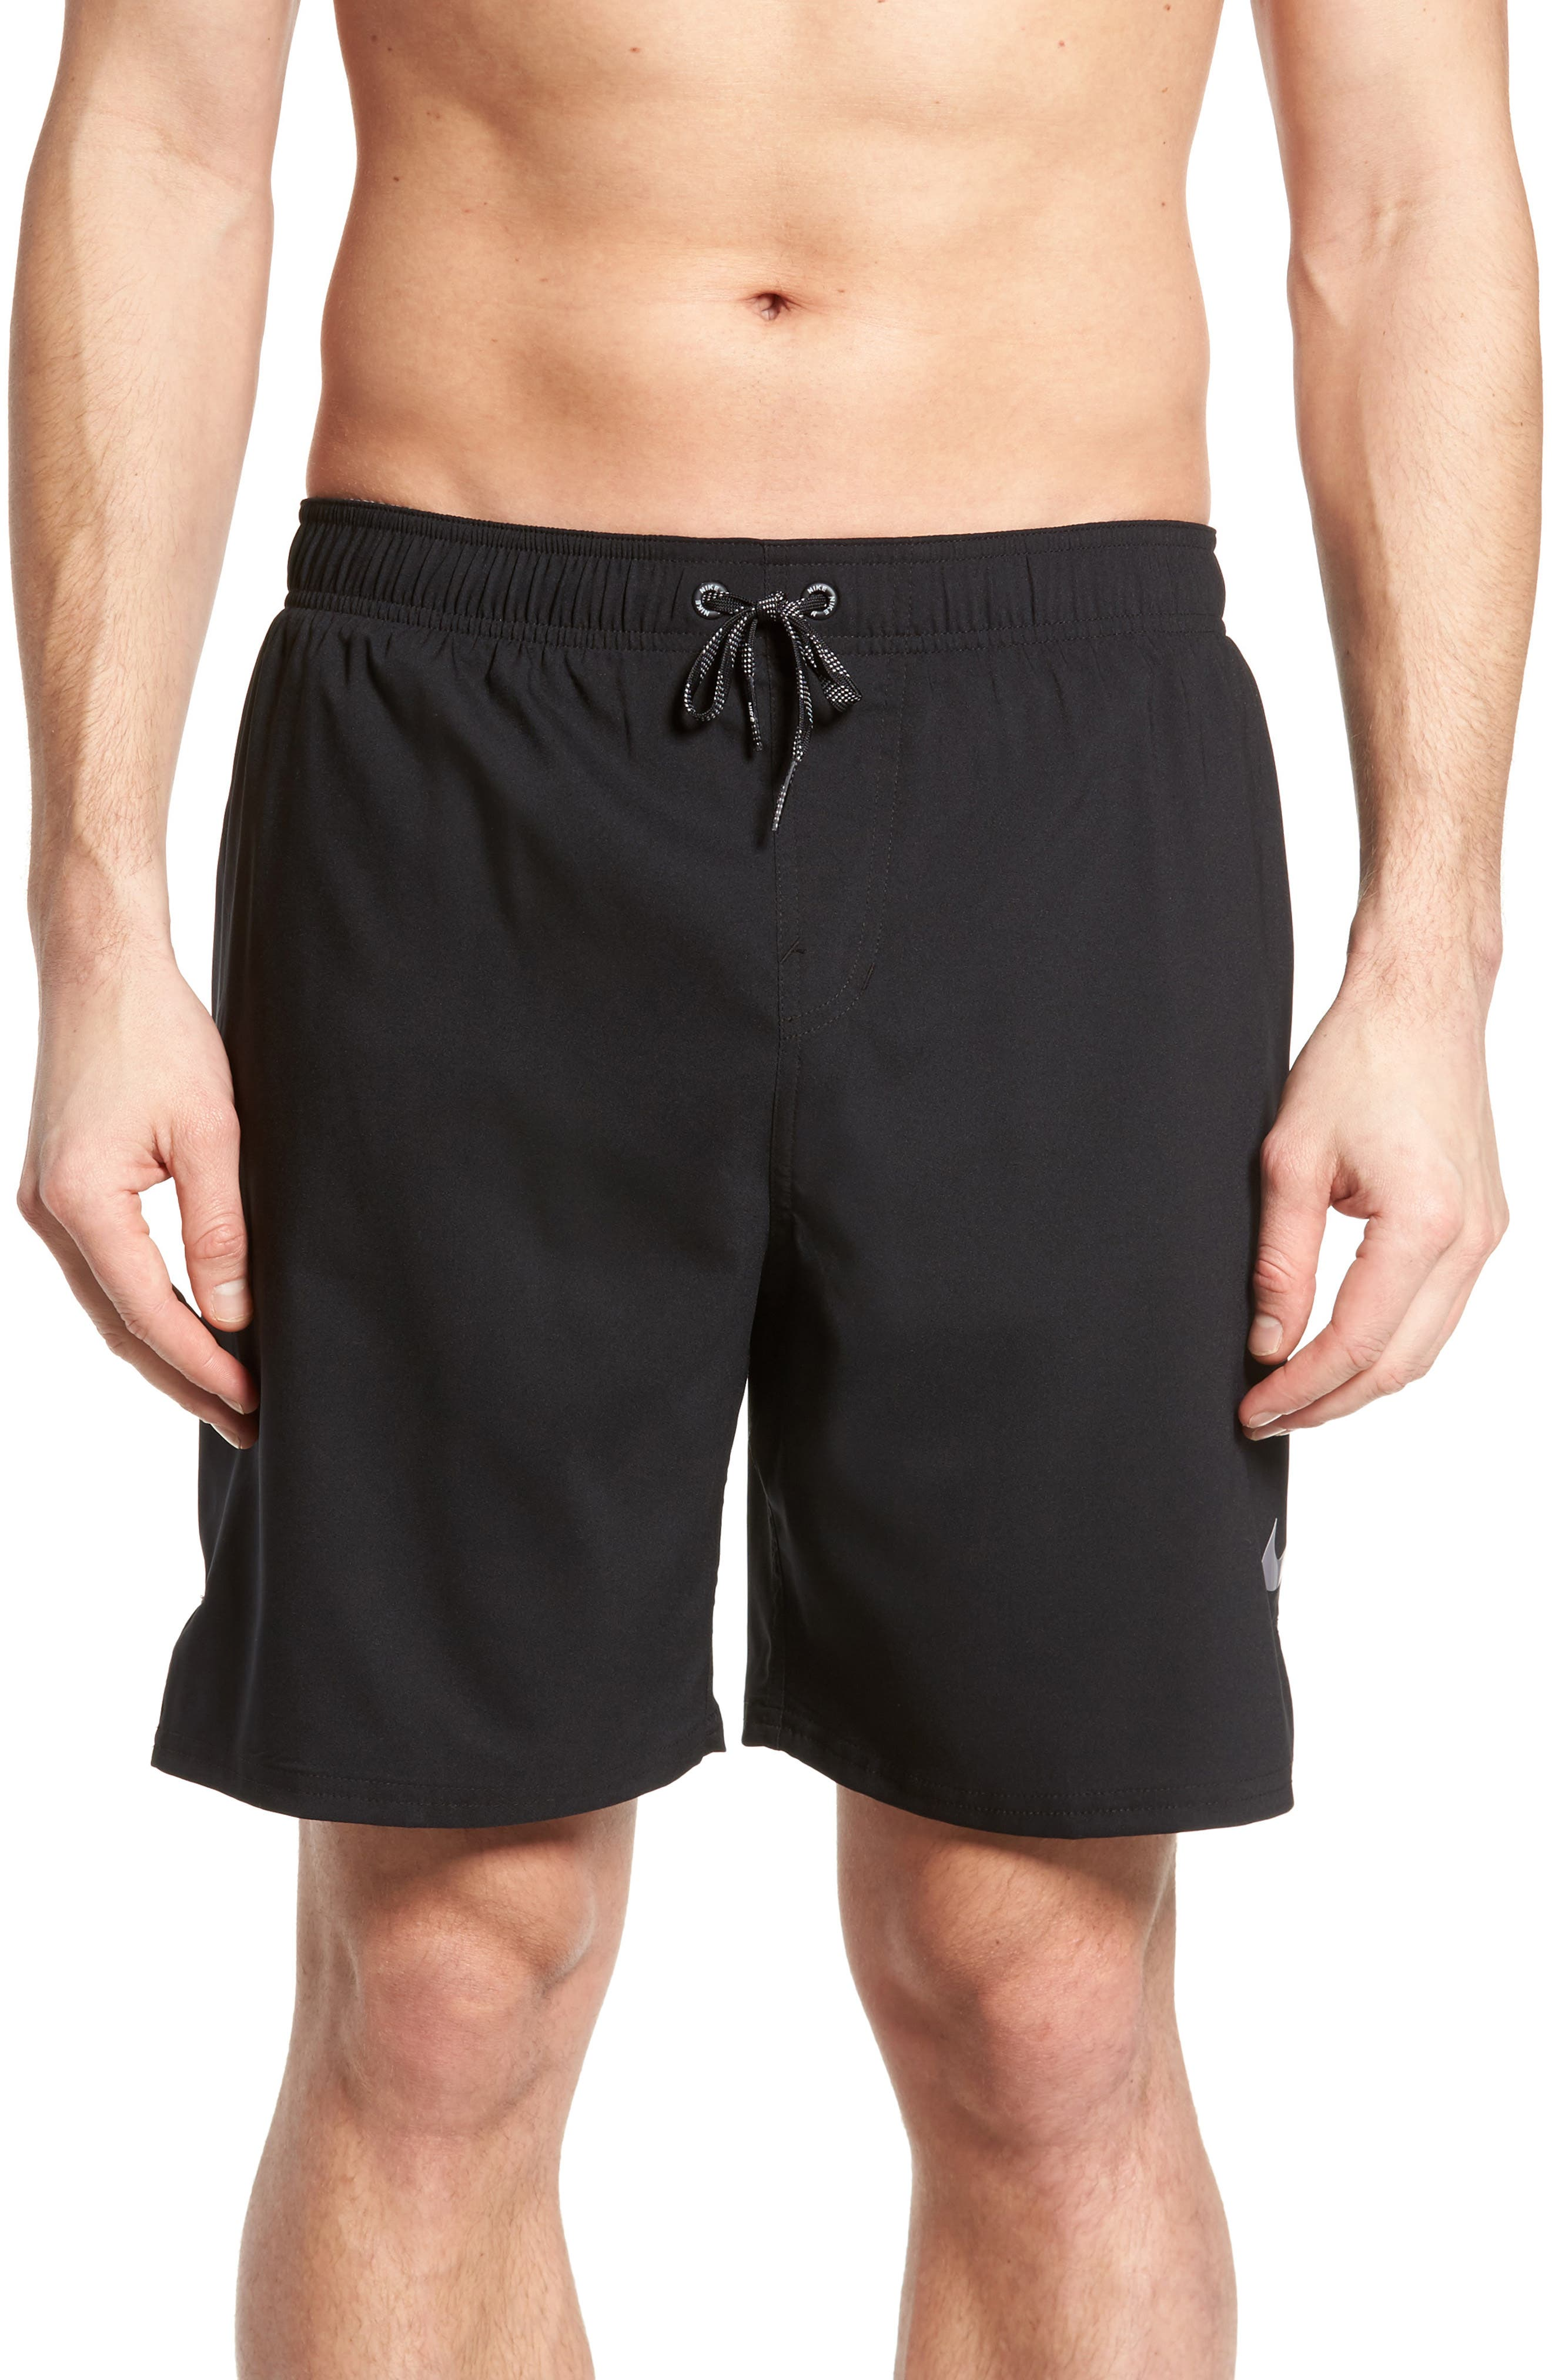 Vital Swim Trunks,                             Main thumbnail 1, color,                             001